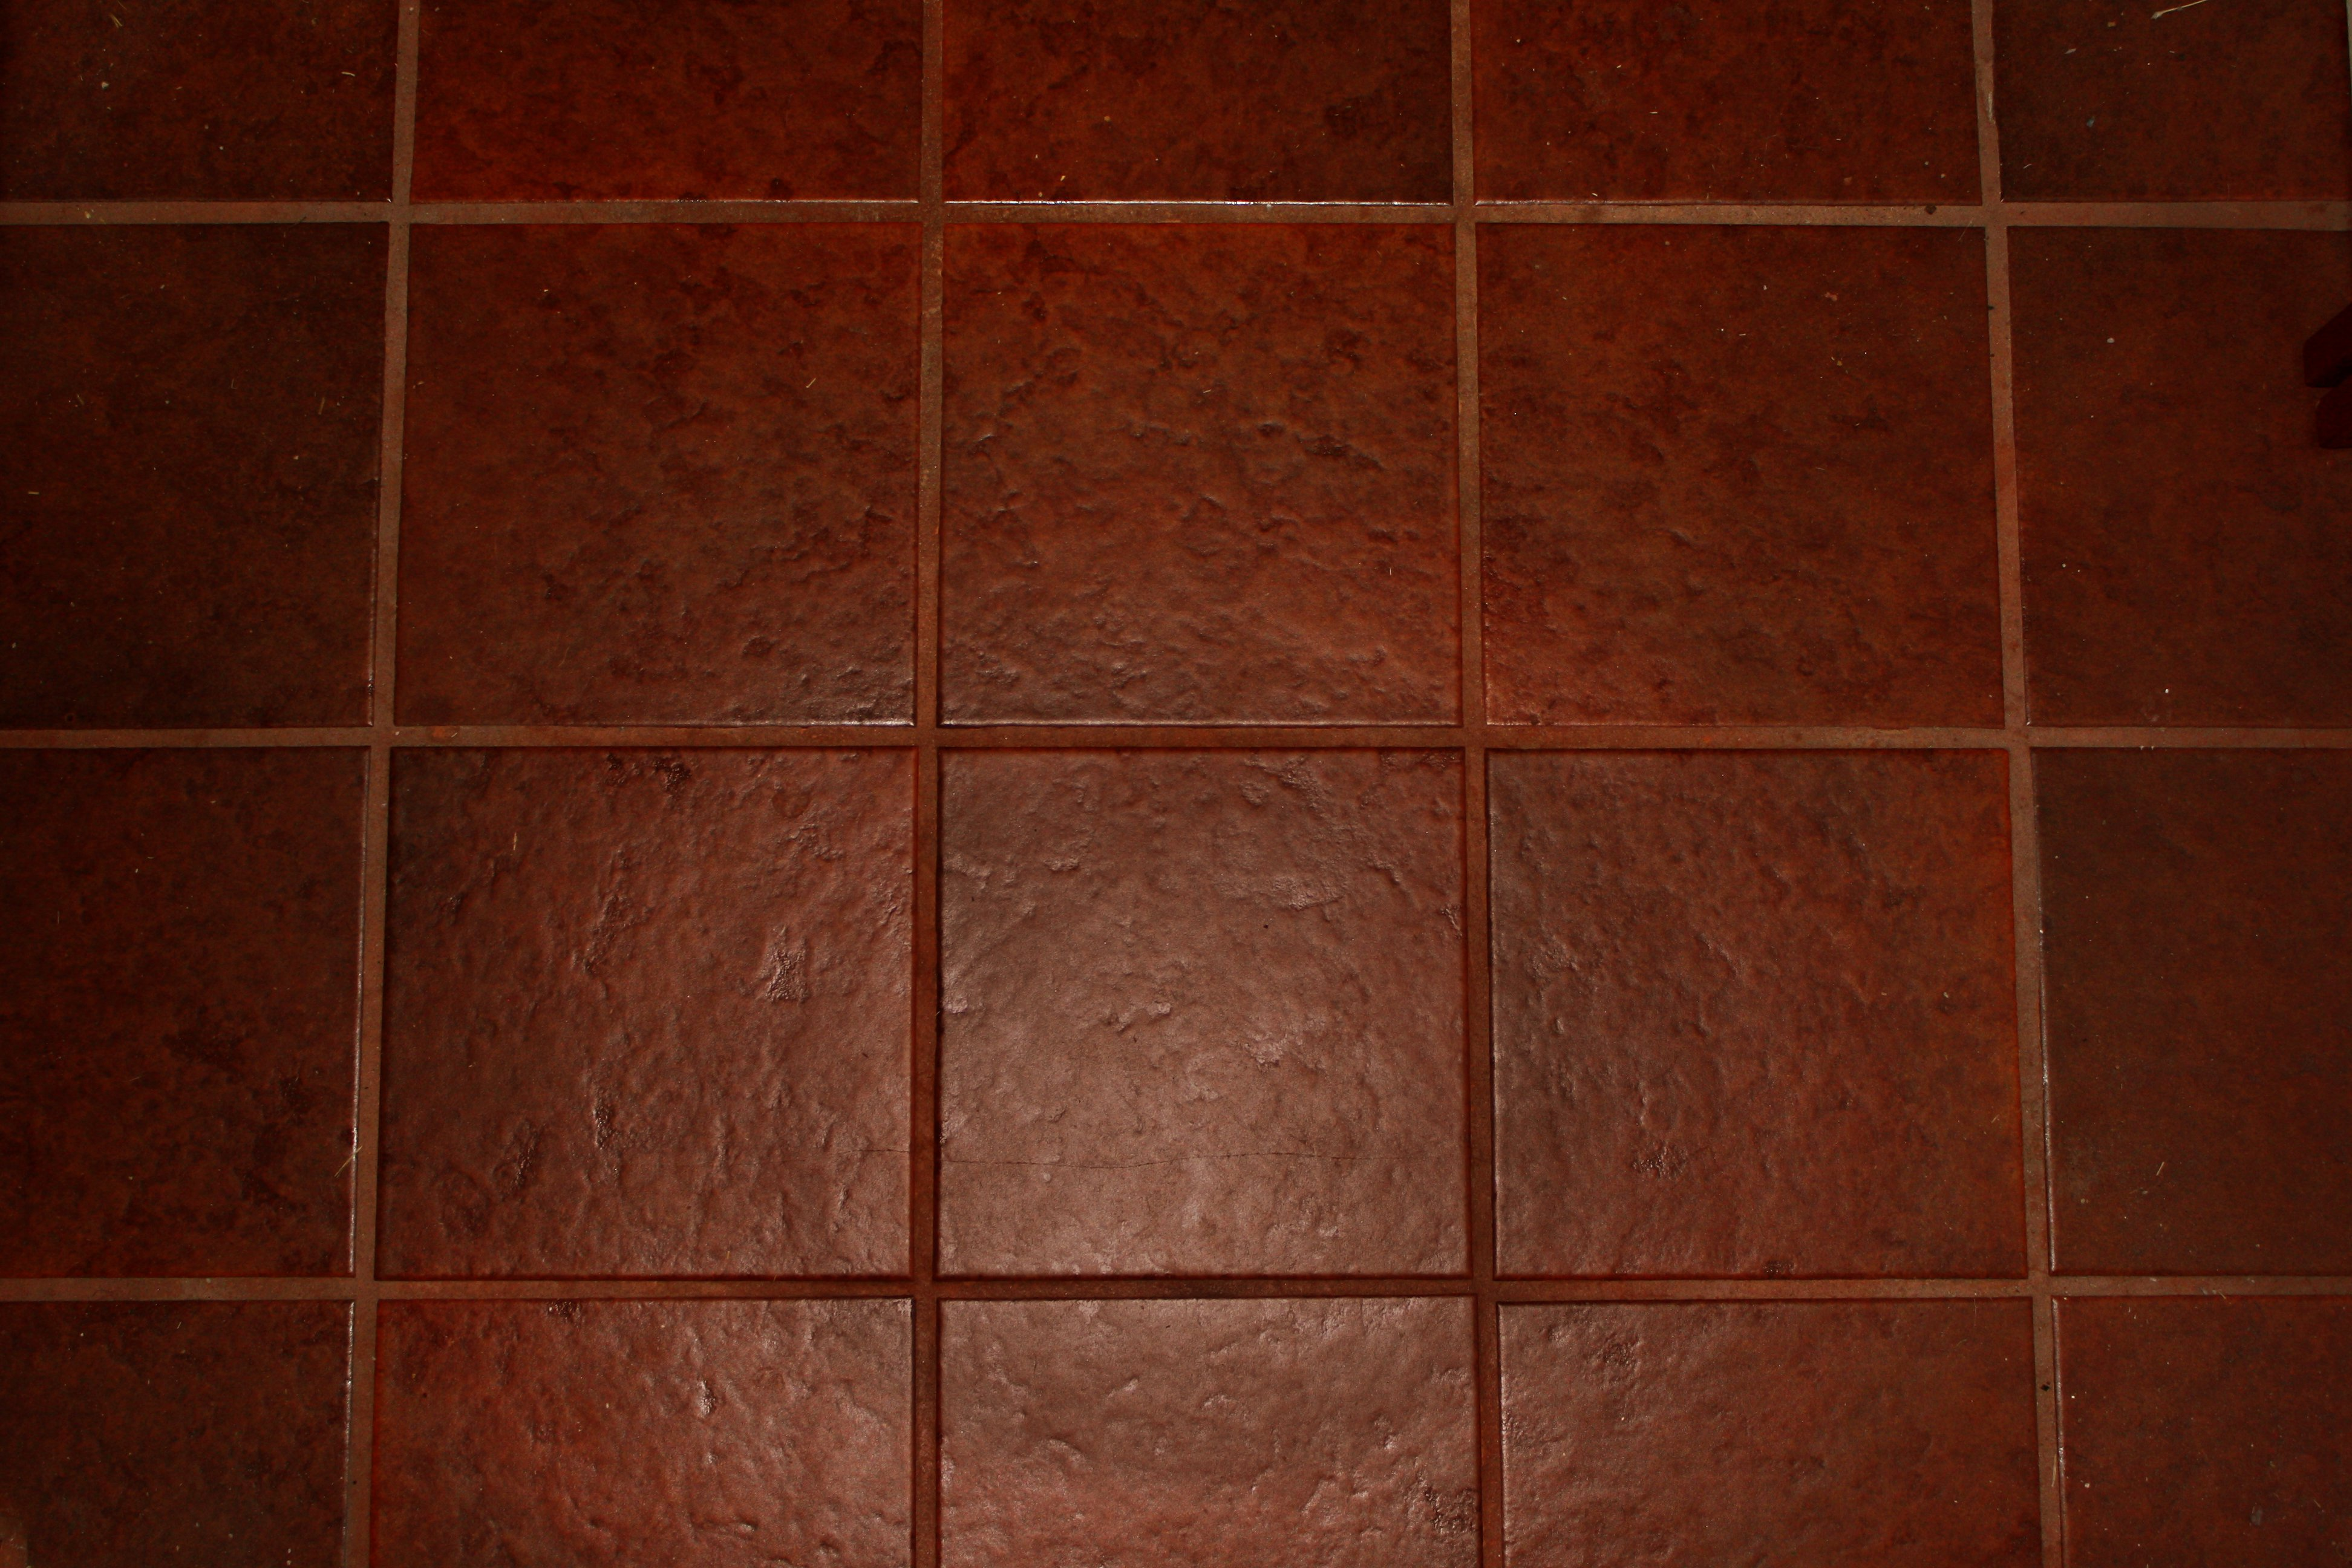 best of tile bathroom floor ideas photograph-Lovely Tile Bathroom Floor Ideas Collection